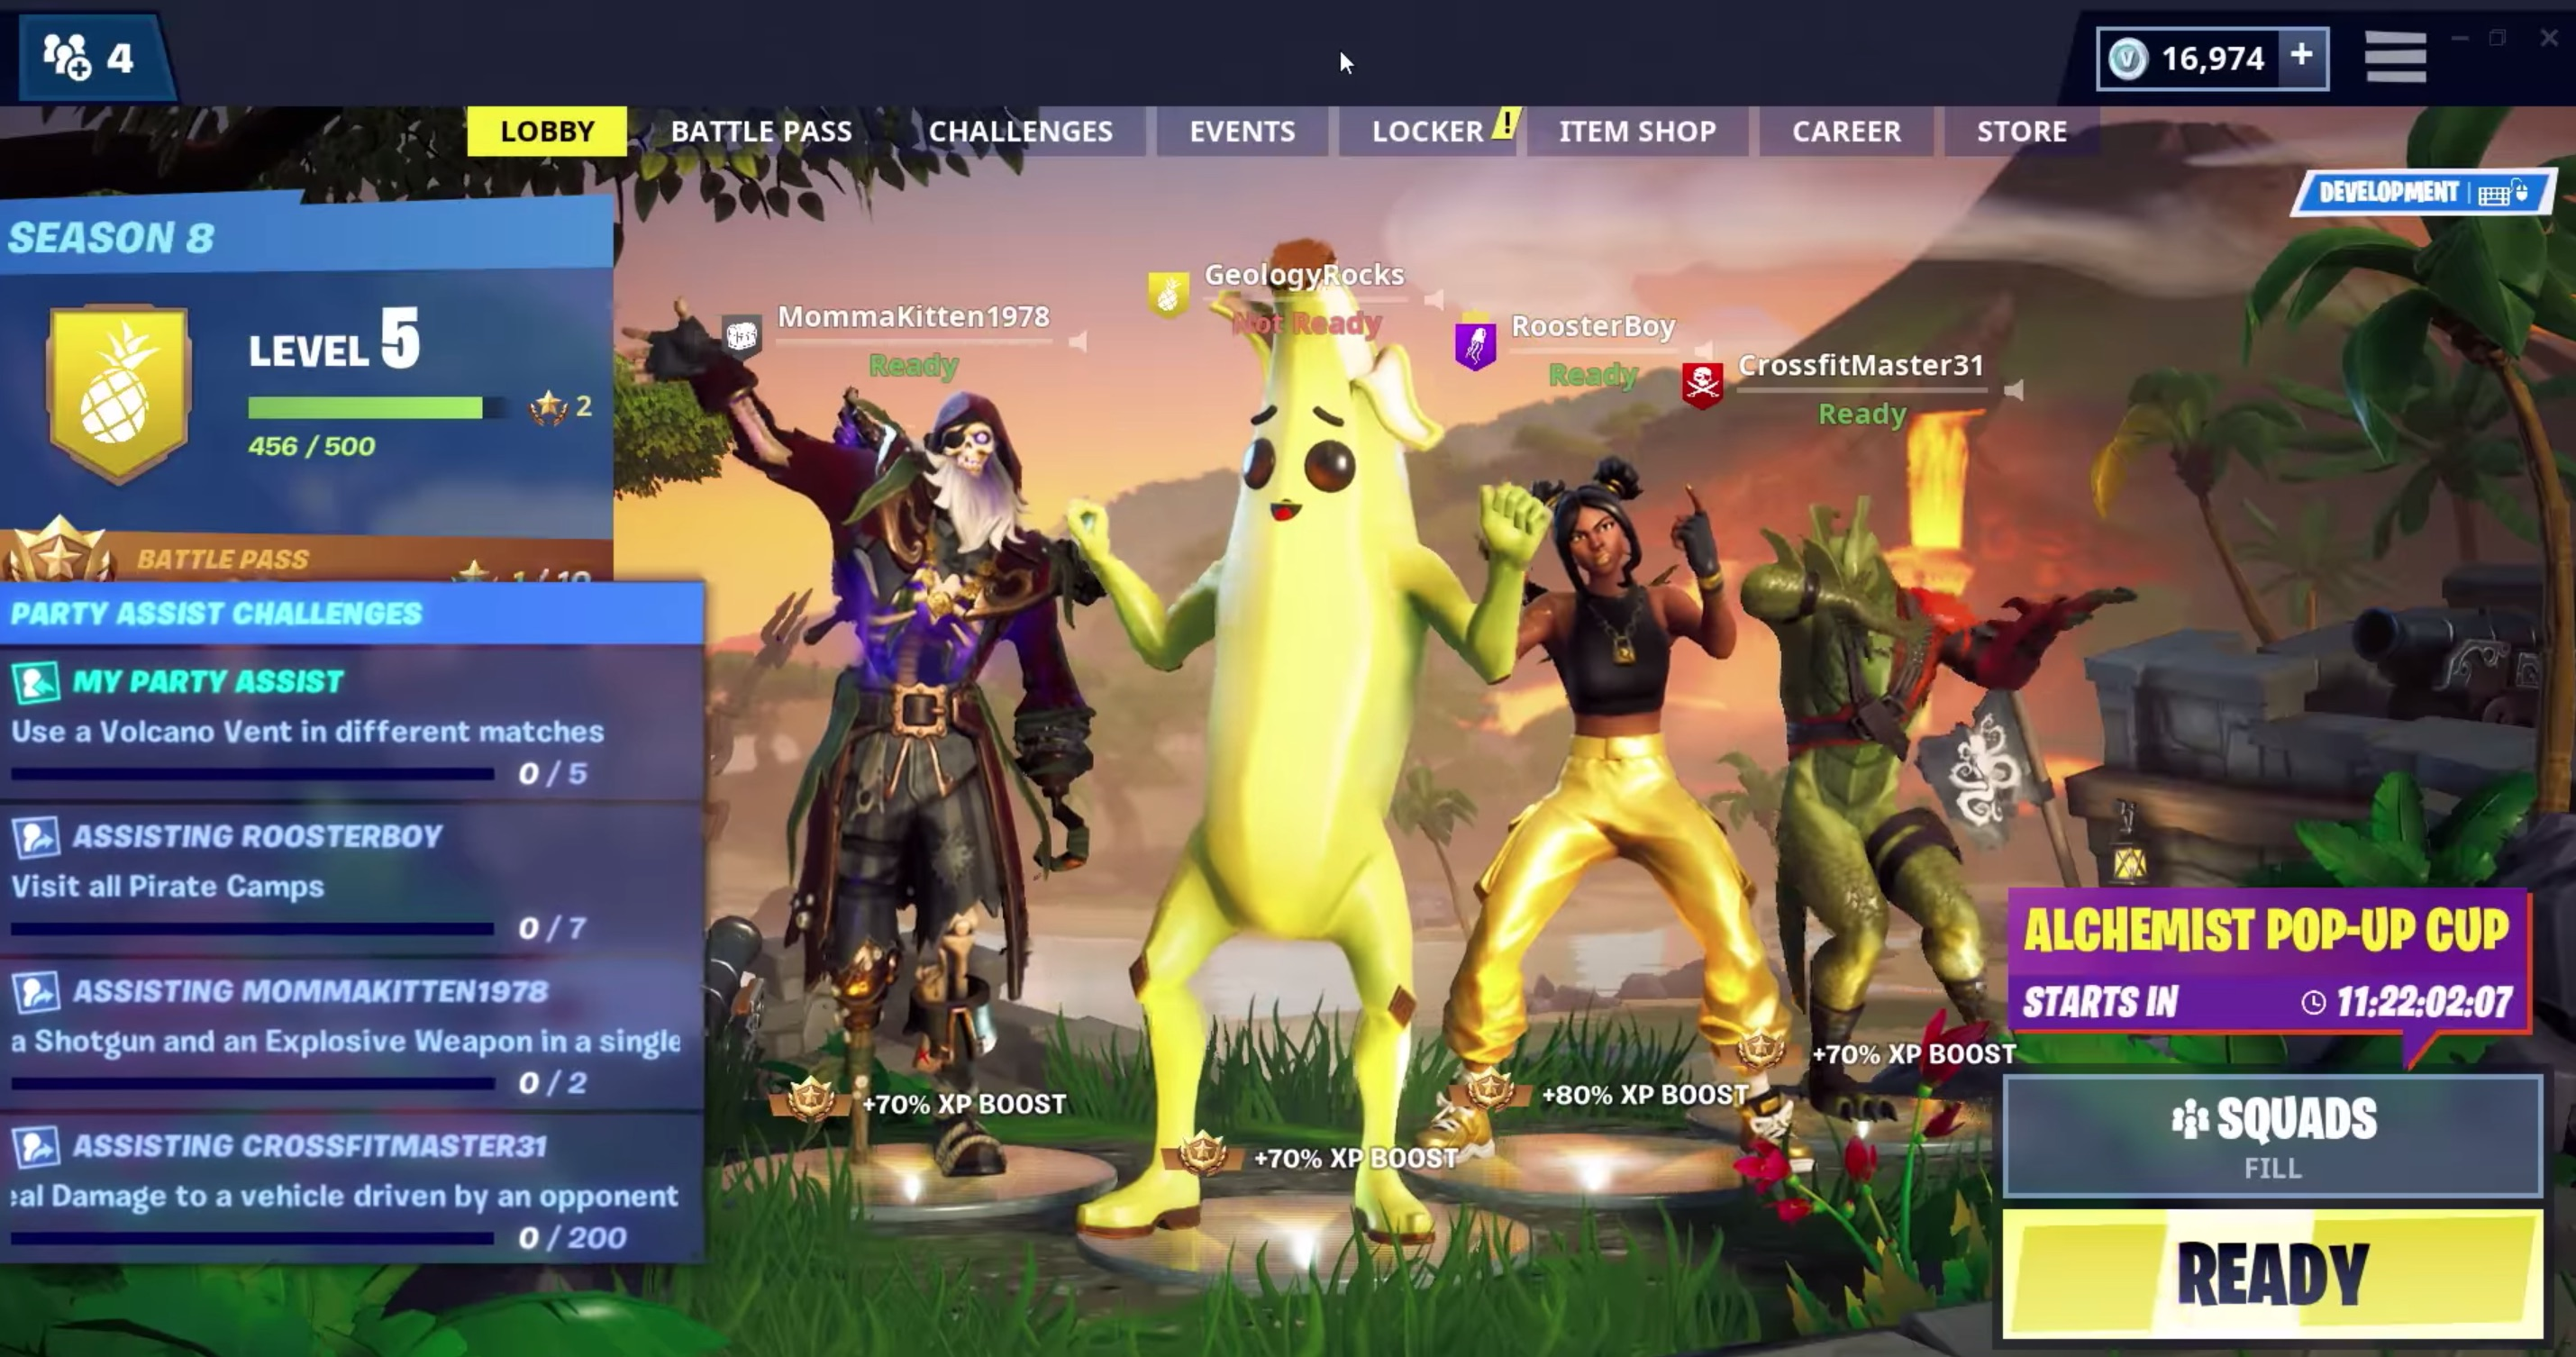 Skin Fortnite Saison 7 Roi Des Glaces Dessin Fortnite 2 500 V Bucks